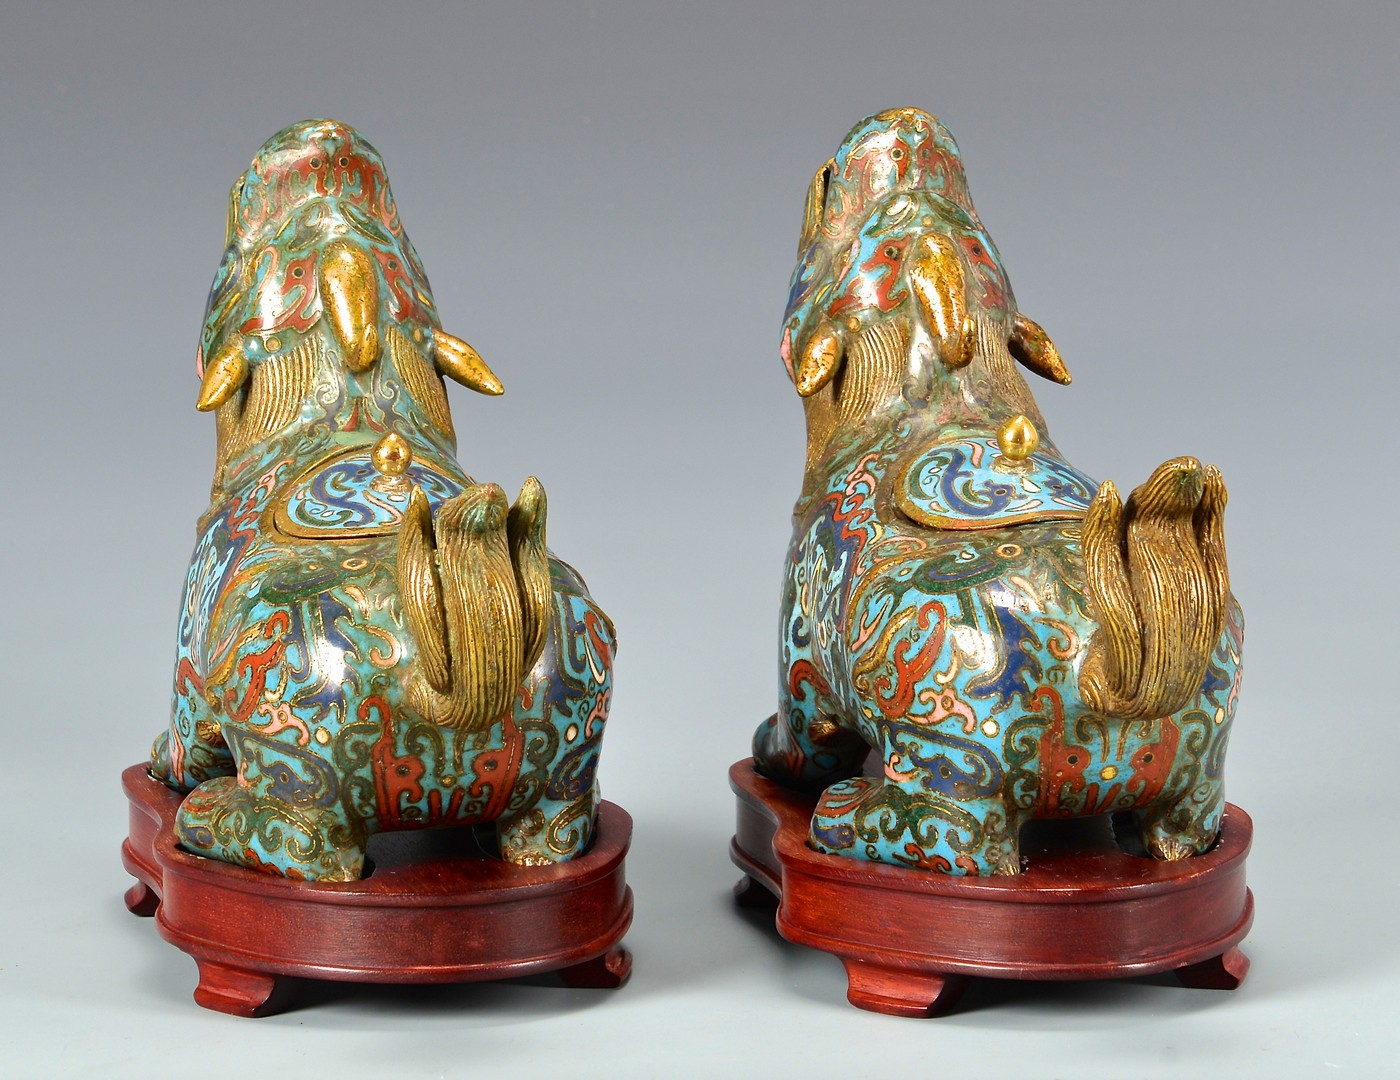 Lot 4010059: 3 Chinese Figural Incense Burners, Dogs & Bird